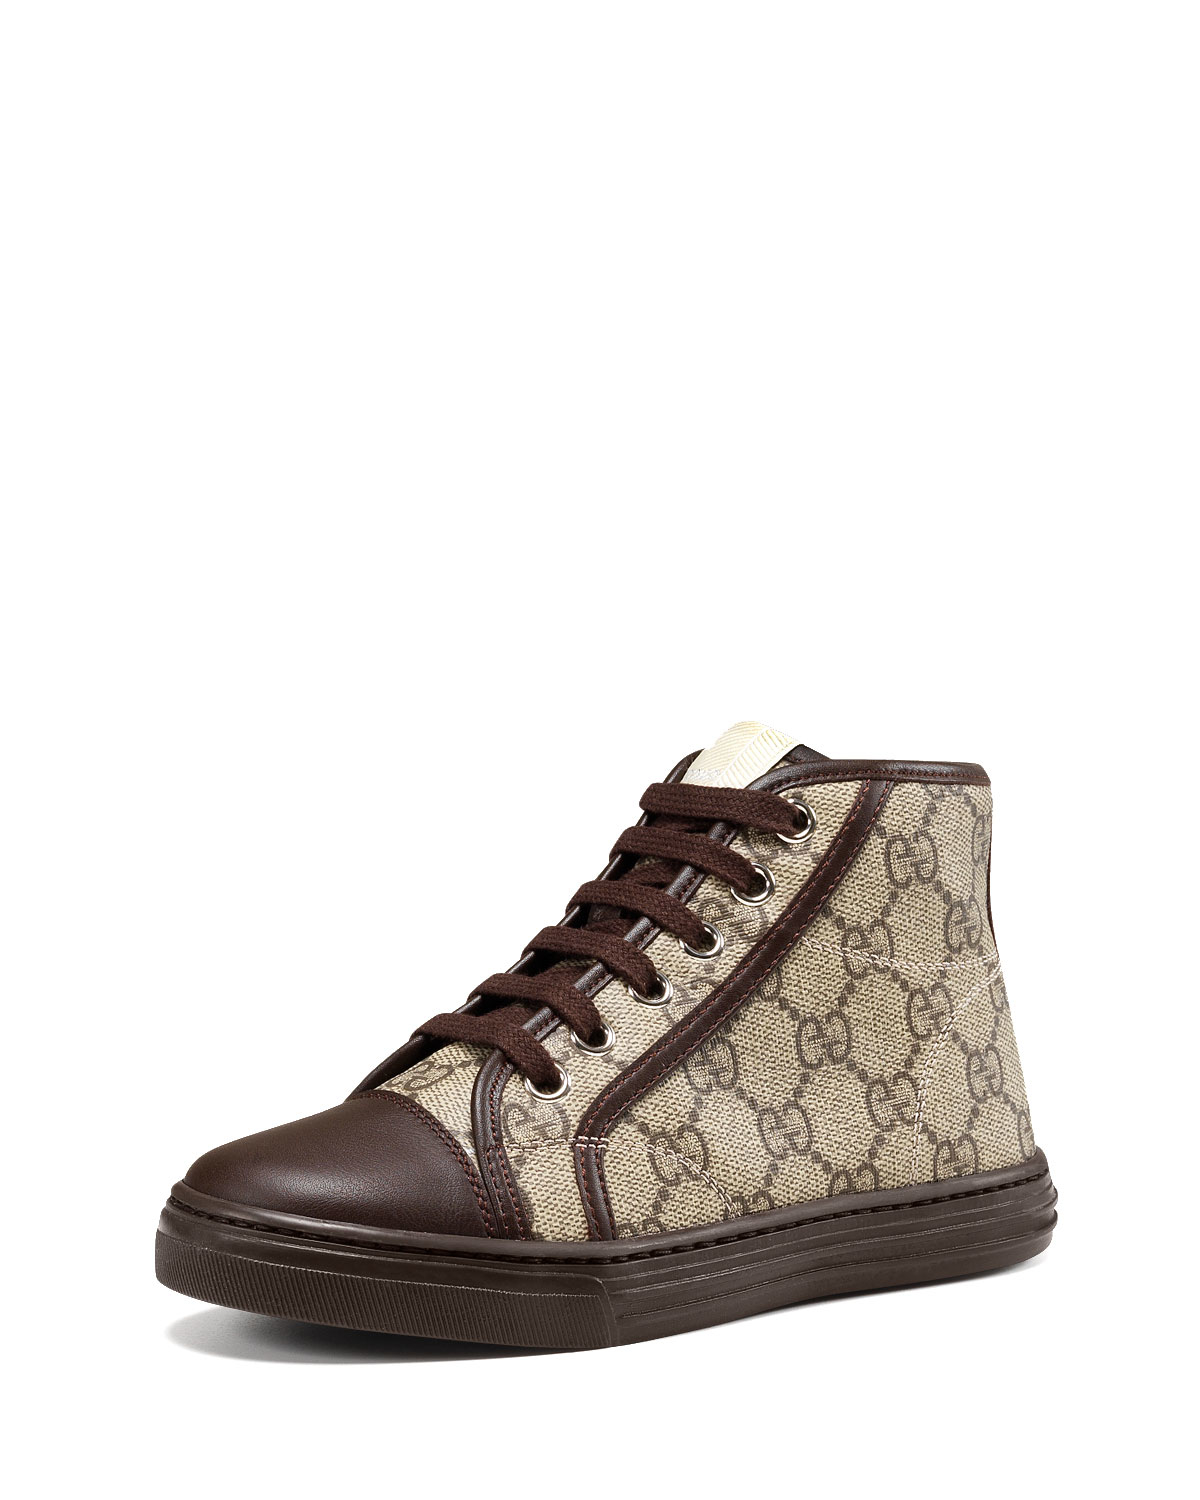 a8c4b4ed0b1 Lyst - Gucci GG Supreme Canvas High-Top Sneakers in Brown for Men